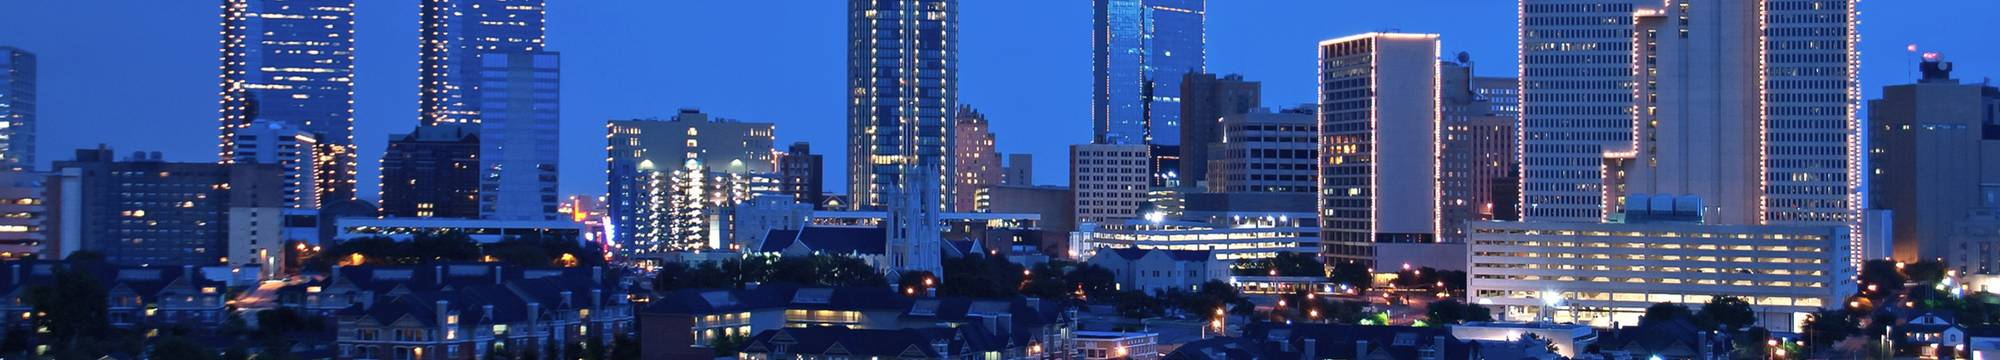 Fort Worth Nighttime Skyline